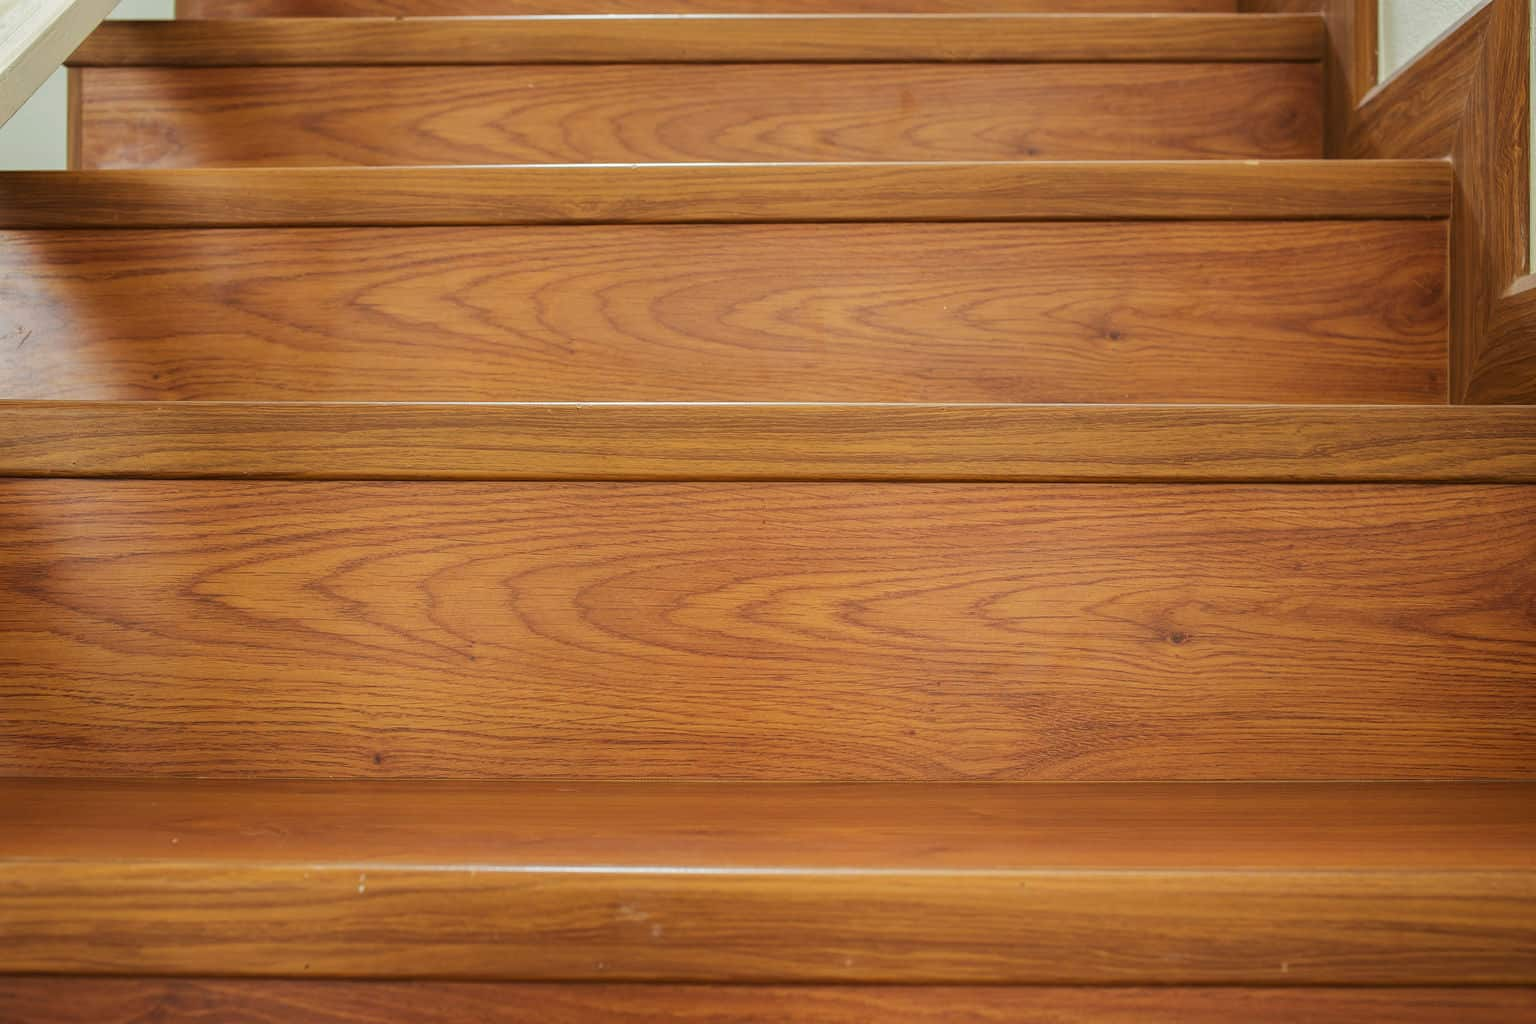 Merveilleux Laminate Flooring Stairs Can Be Pretty Durable